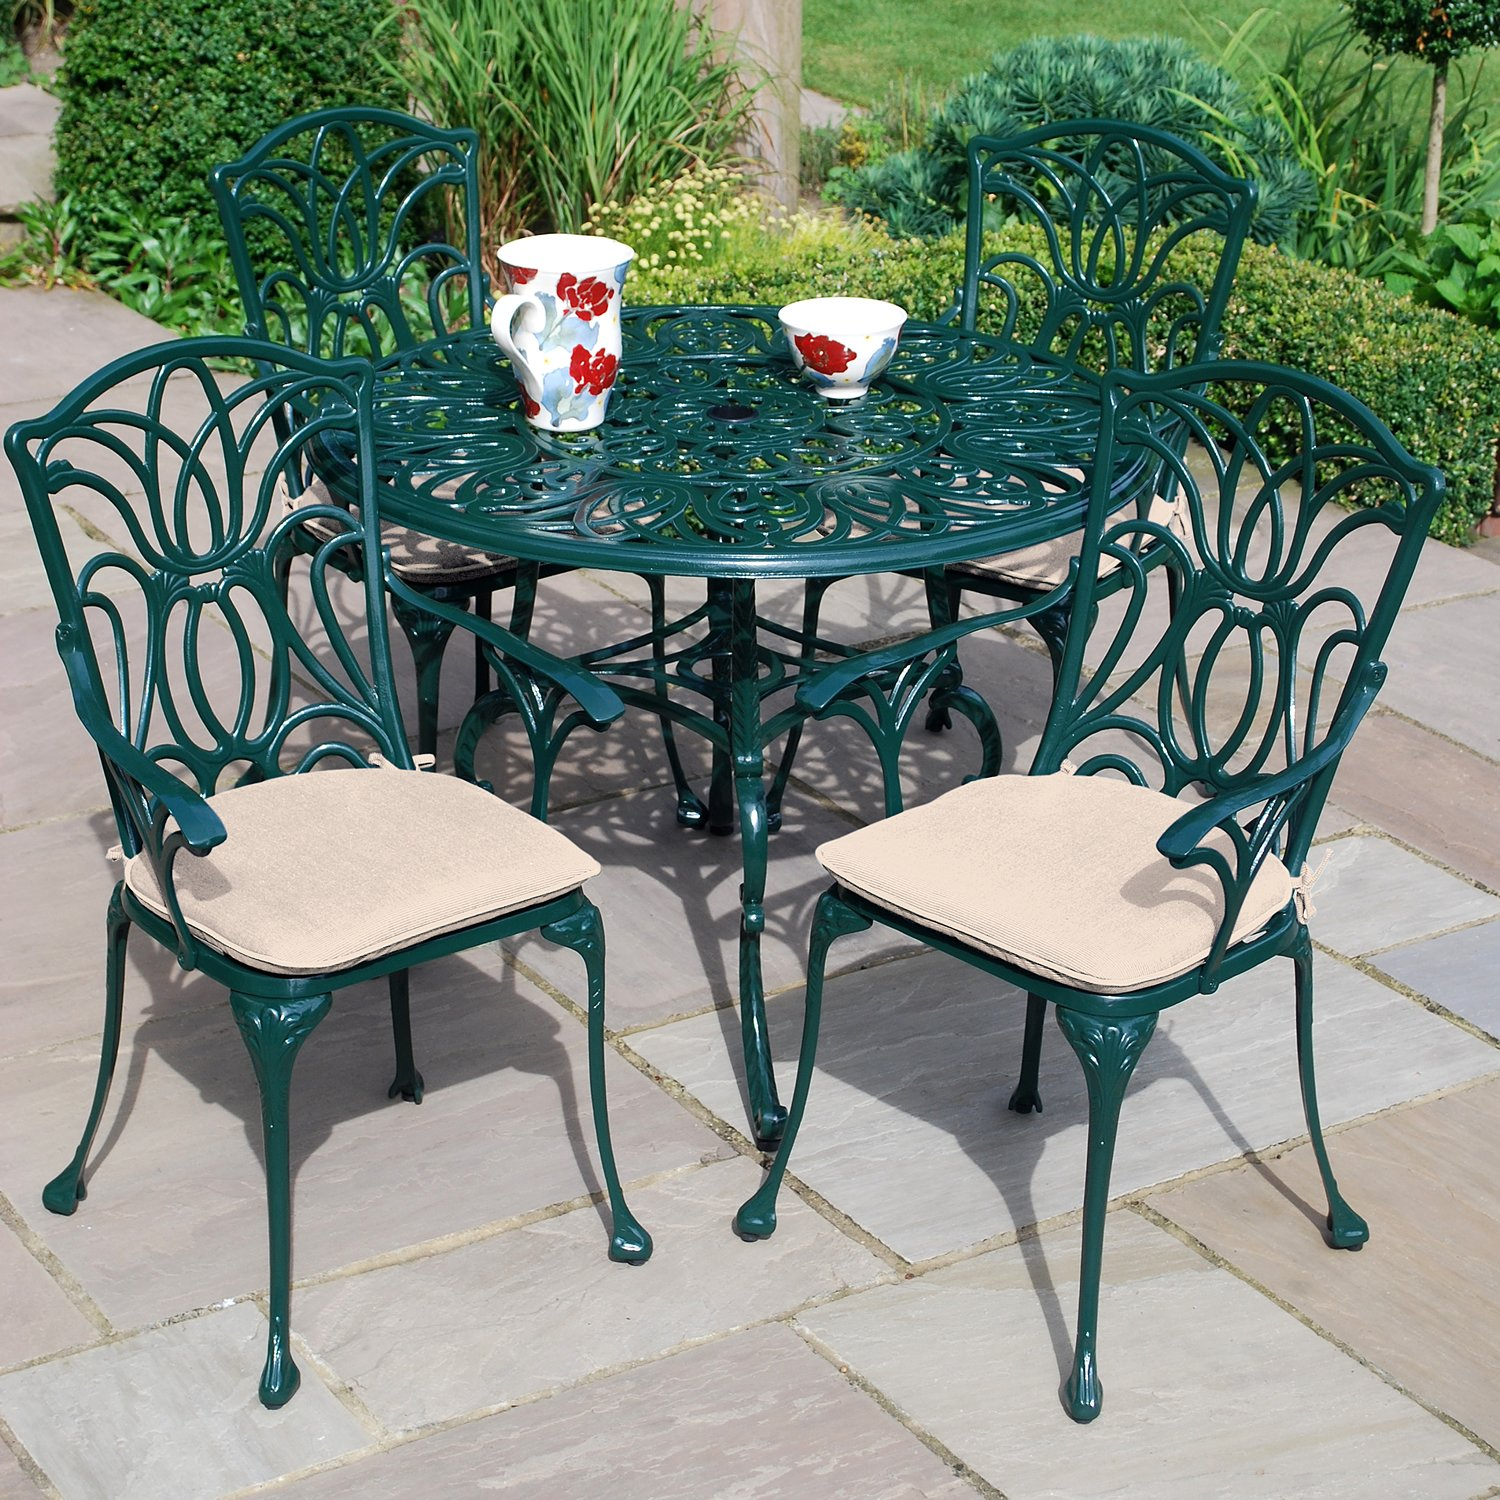 collection garden furniture accessories pictures. Leisuregrow Norfolk 4 Seater 100cm Round Aluminium Table With Green Armchairs - Metal Garden Furniture Set Dining Outdoor Patio And Collection Accessories Pictures T